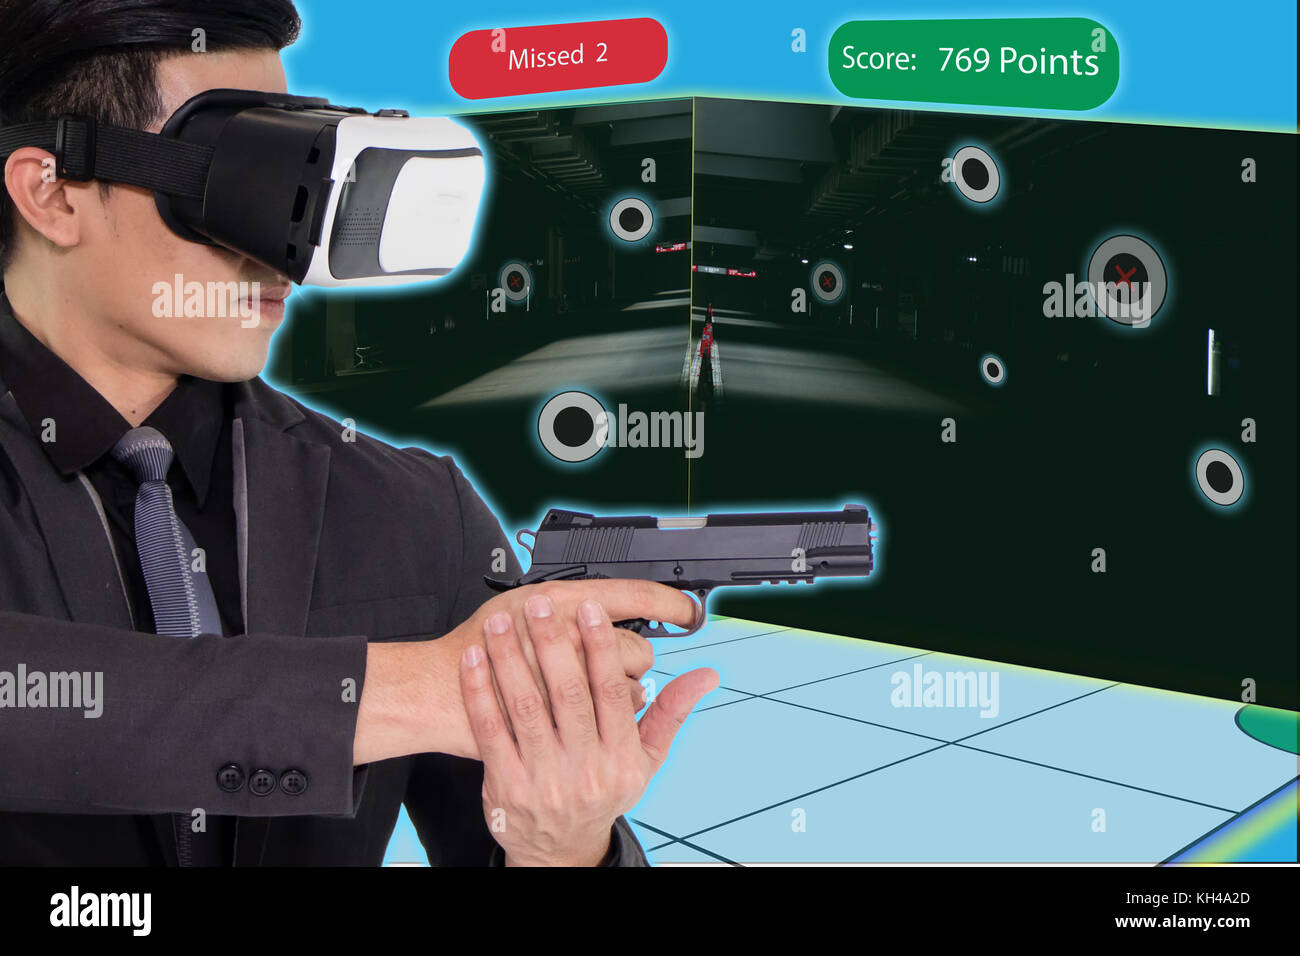 understanding the concept of virtual reality and simulation From the most realistic virtual reality game room in the world to training using virtual reality technology, find all the latest news here  3-d virtual simulation gets to the 'heart' of .